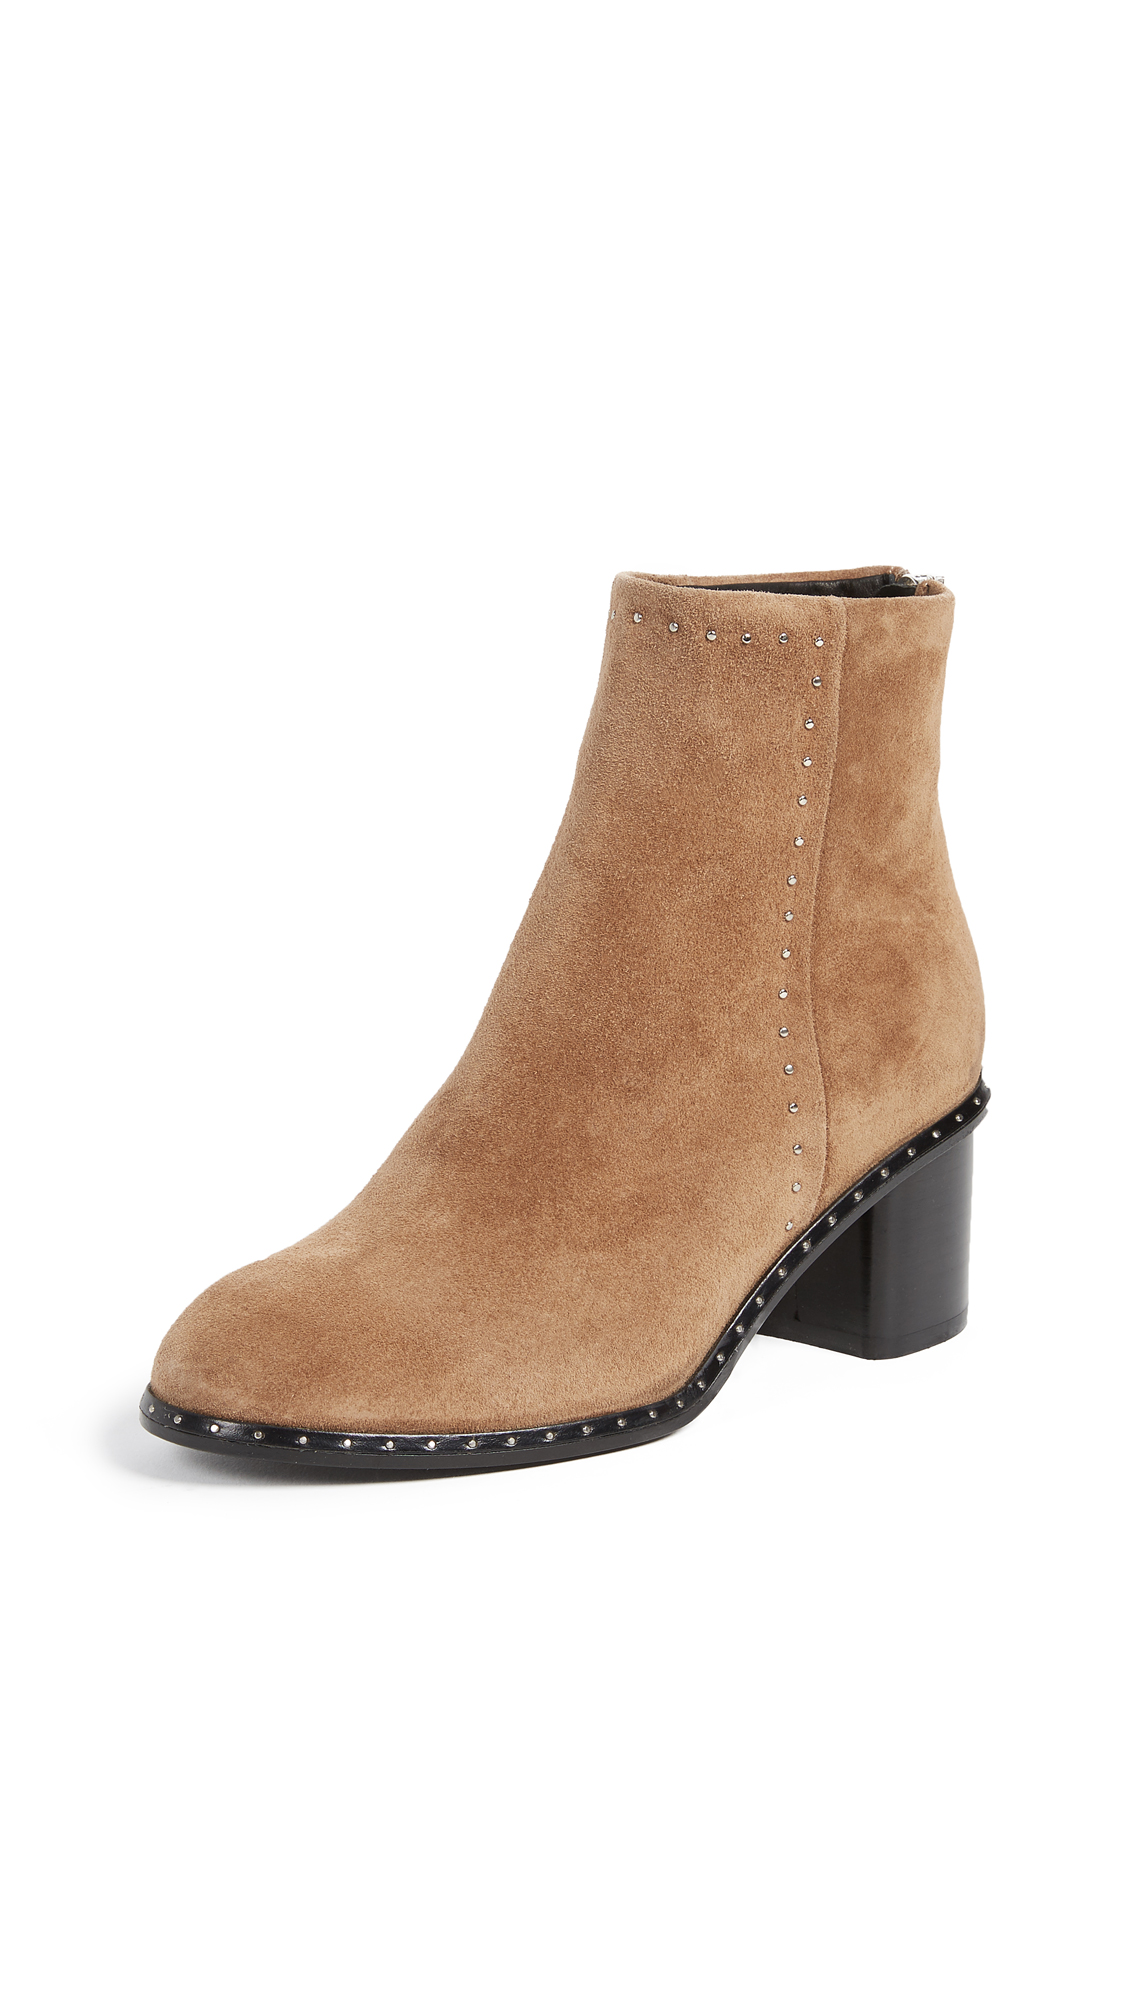 Rag & Bone Willow Stud Booties - Camel